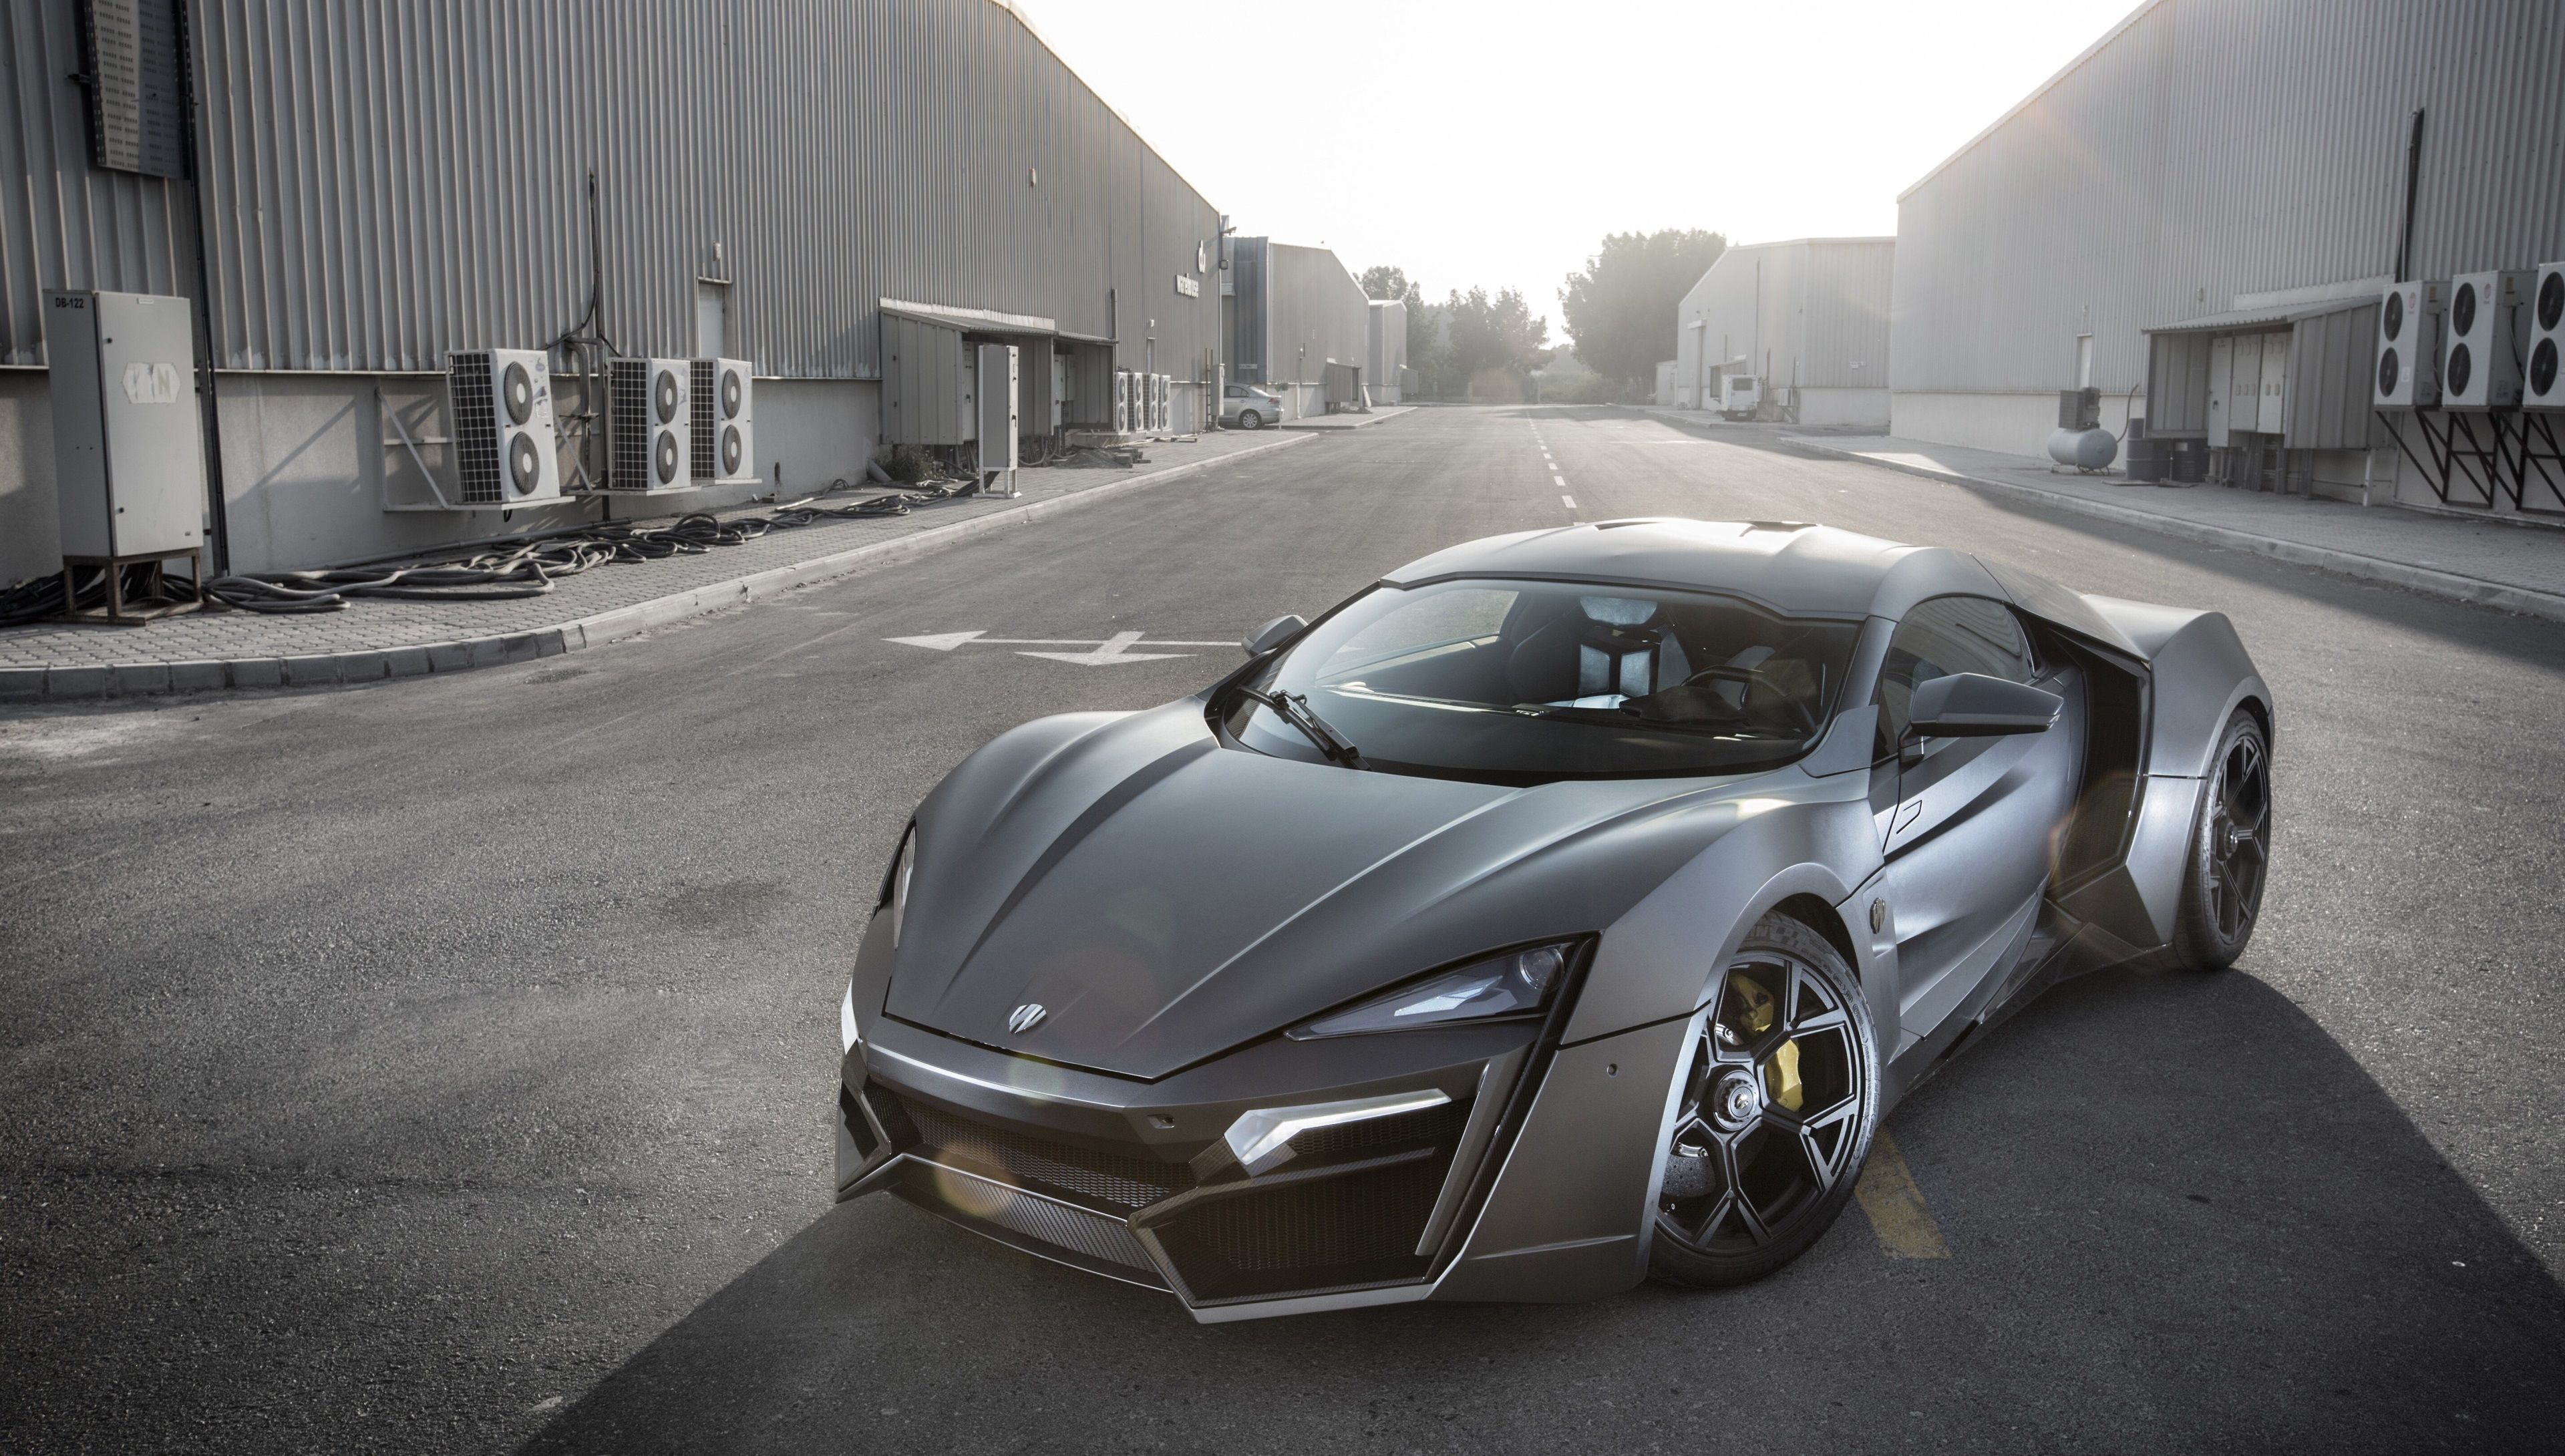 3840x2180 Lykan Hypersport 4k Hd Wallpapers With High Resolution